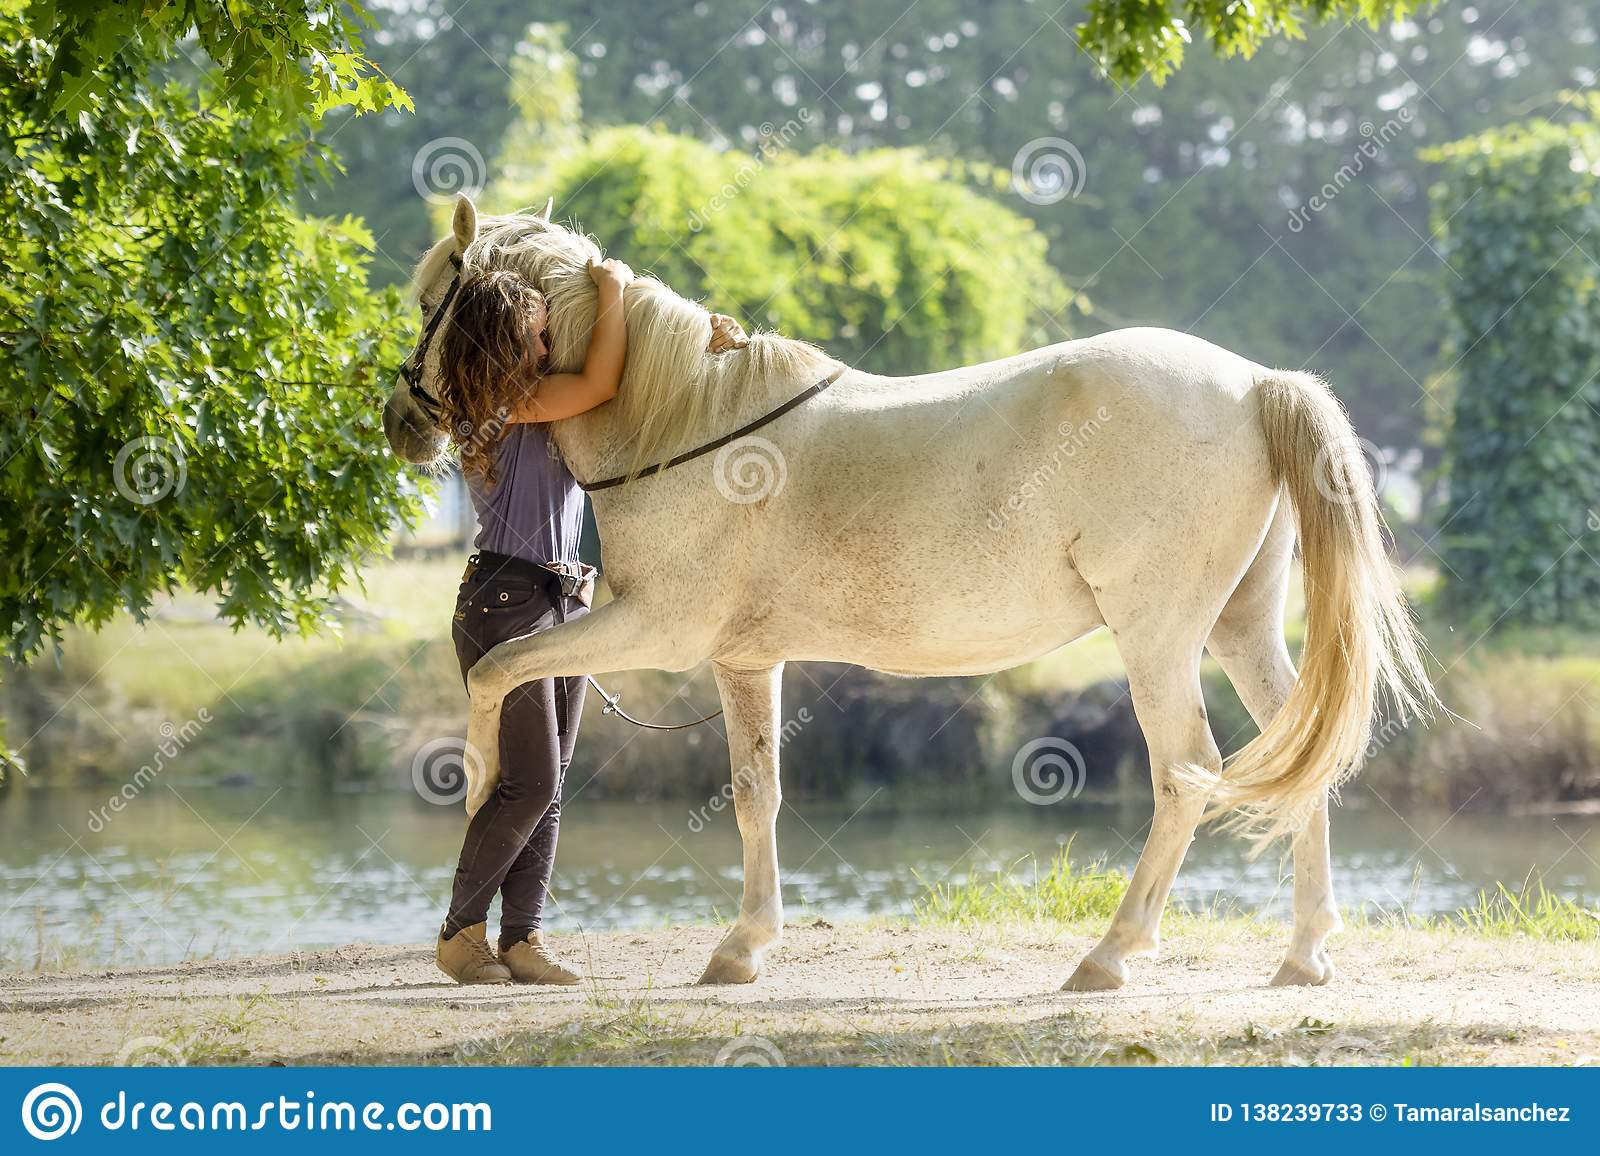 Irene Gefaell with her horse in a demonstration of natural dressage in Pontevedra, Spain, in august of 2018